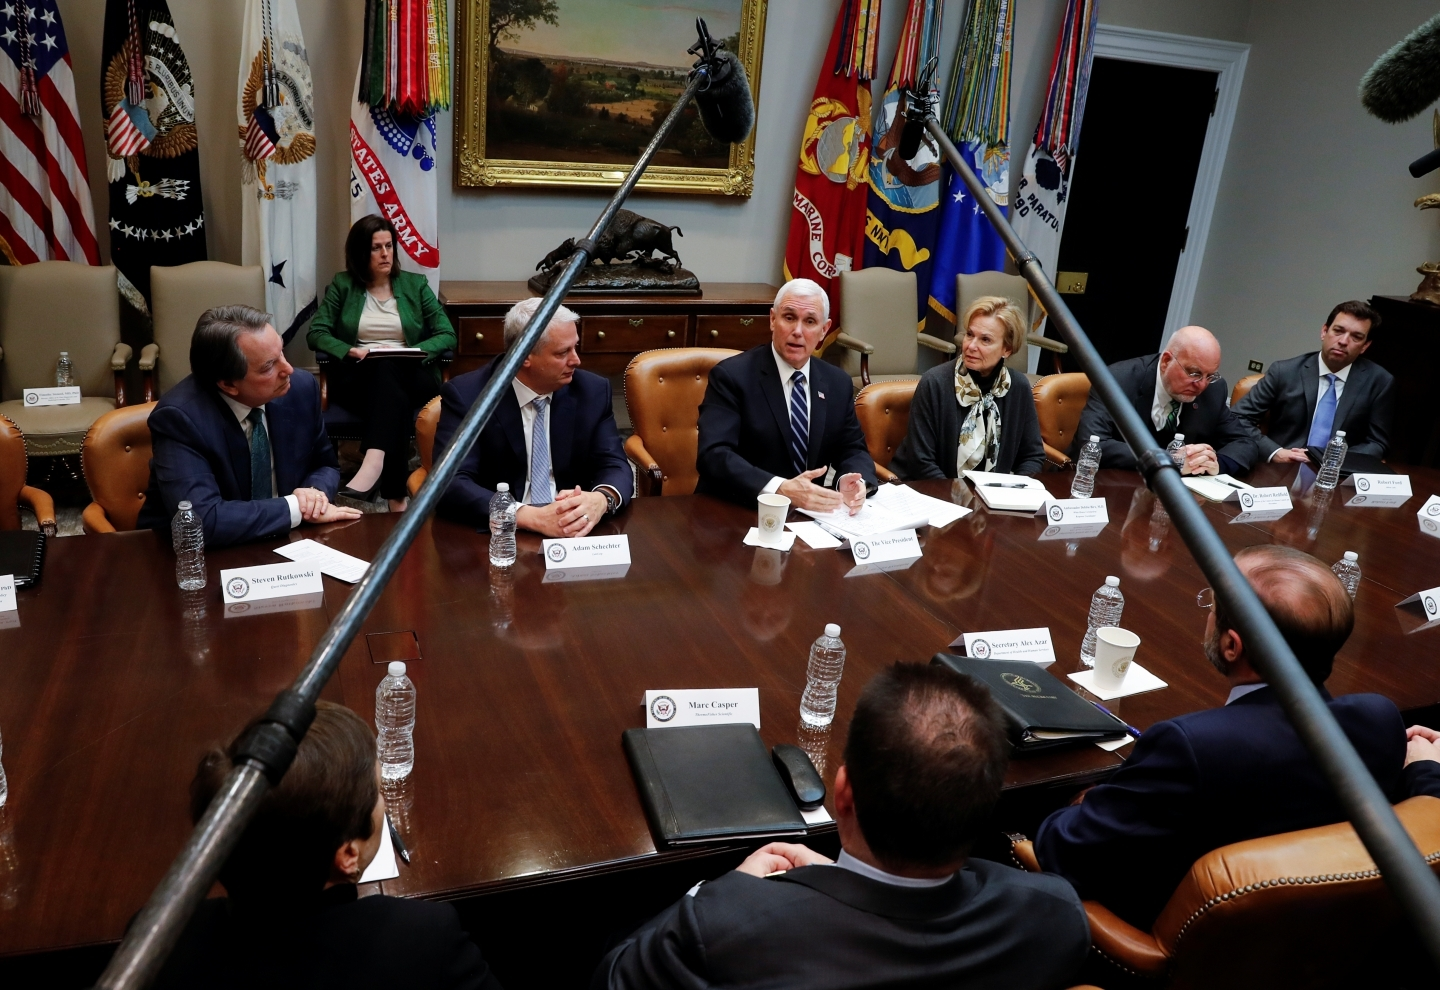 US Vice President Mike Pence speaks during a coronavirus briefing with diagnostic lab CEOs at the White House on March 4, 2020. (REUTERS/Carlos Barria)